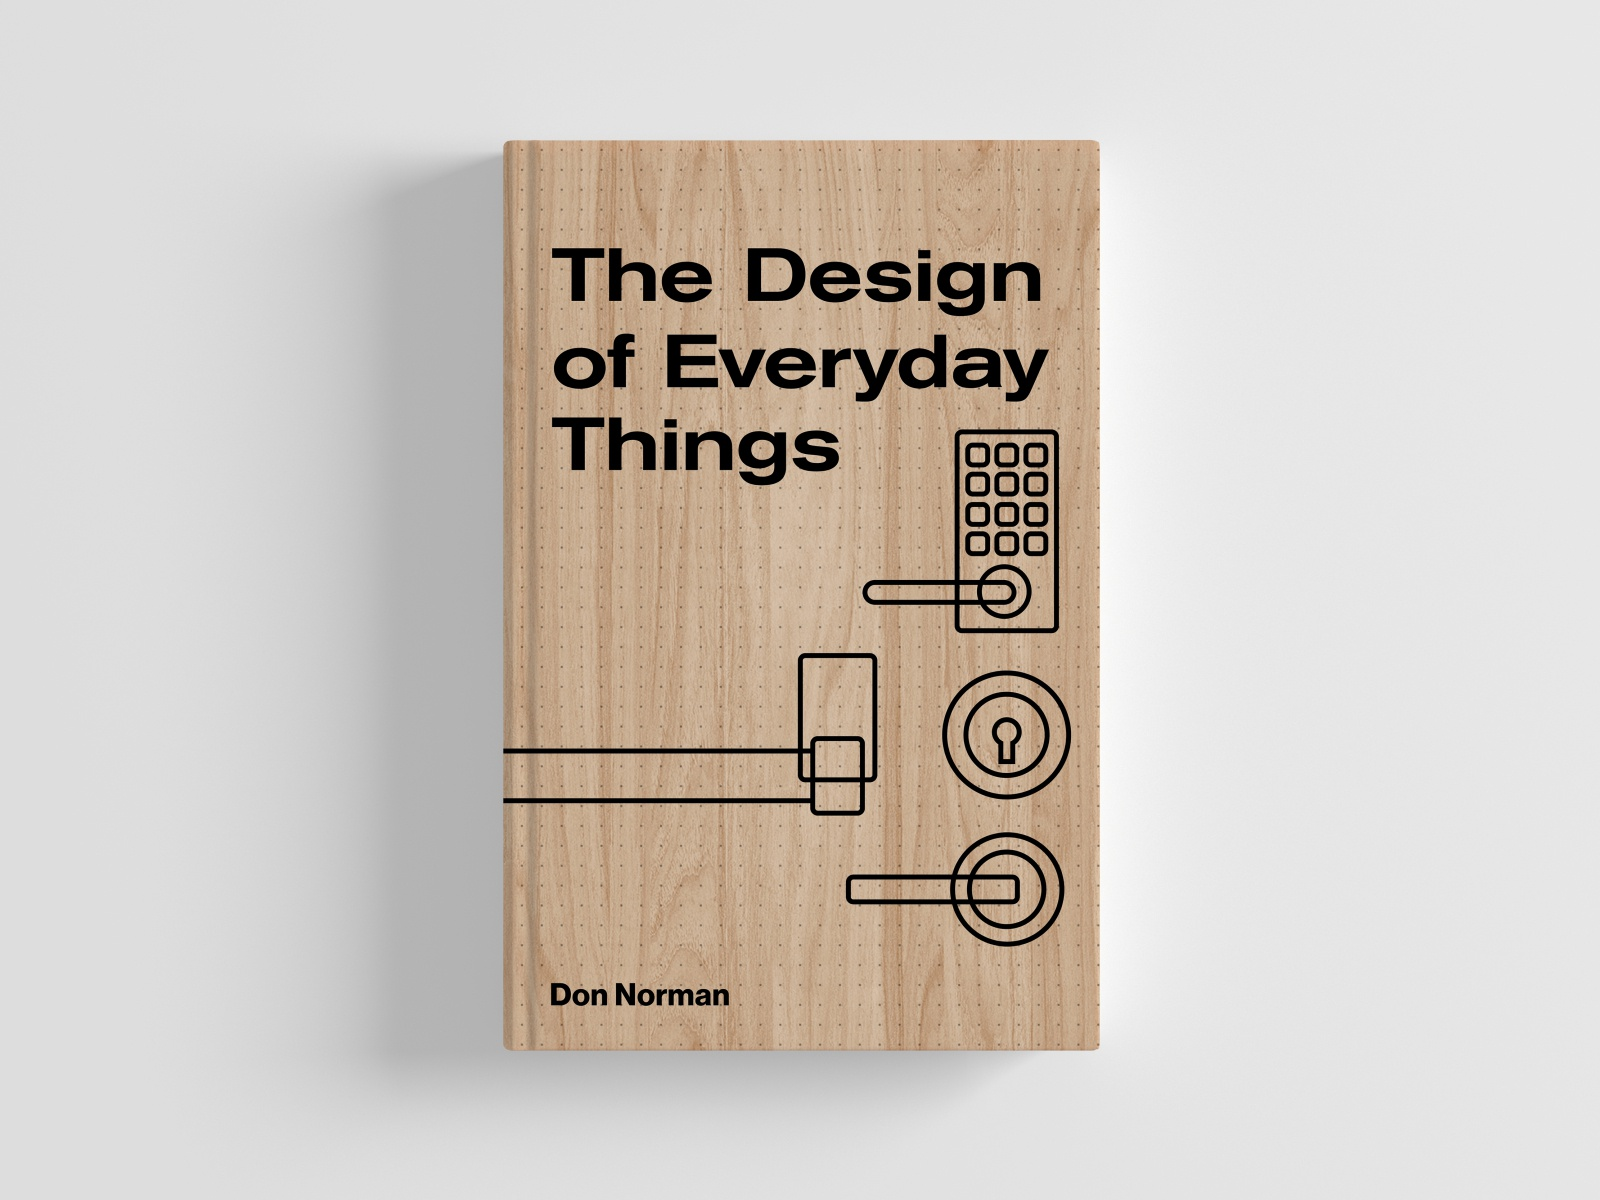 RE:IMAGINED BOOK COVER DESIGN | The Design Of Everyday Things